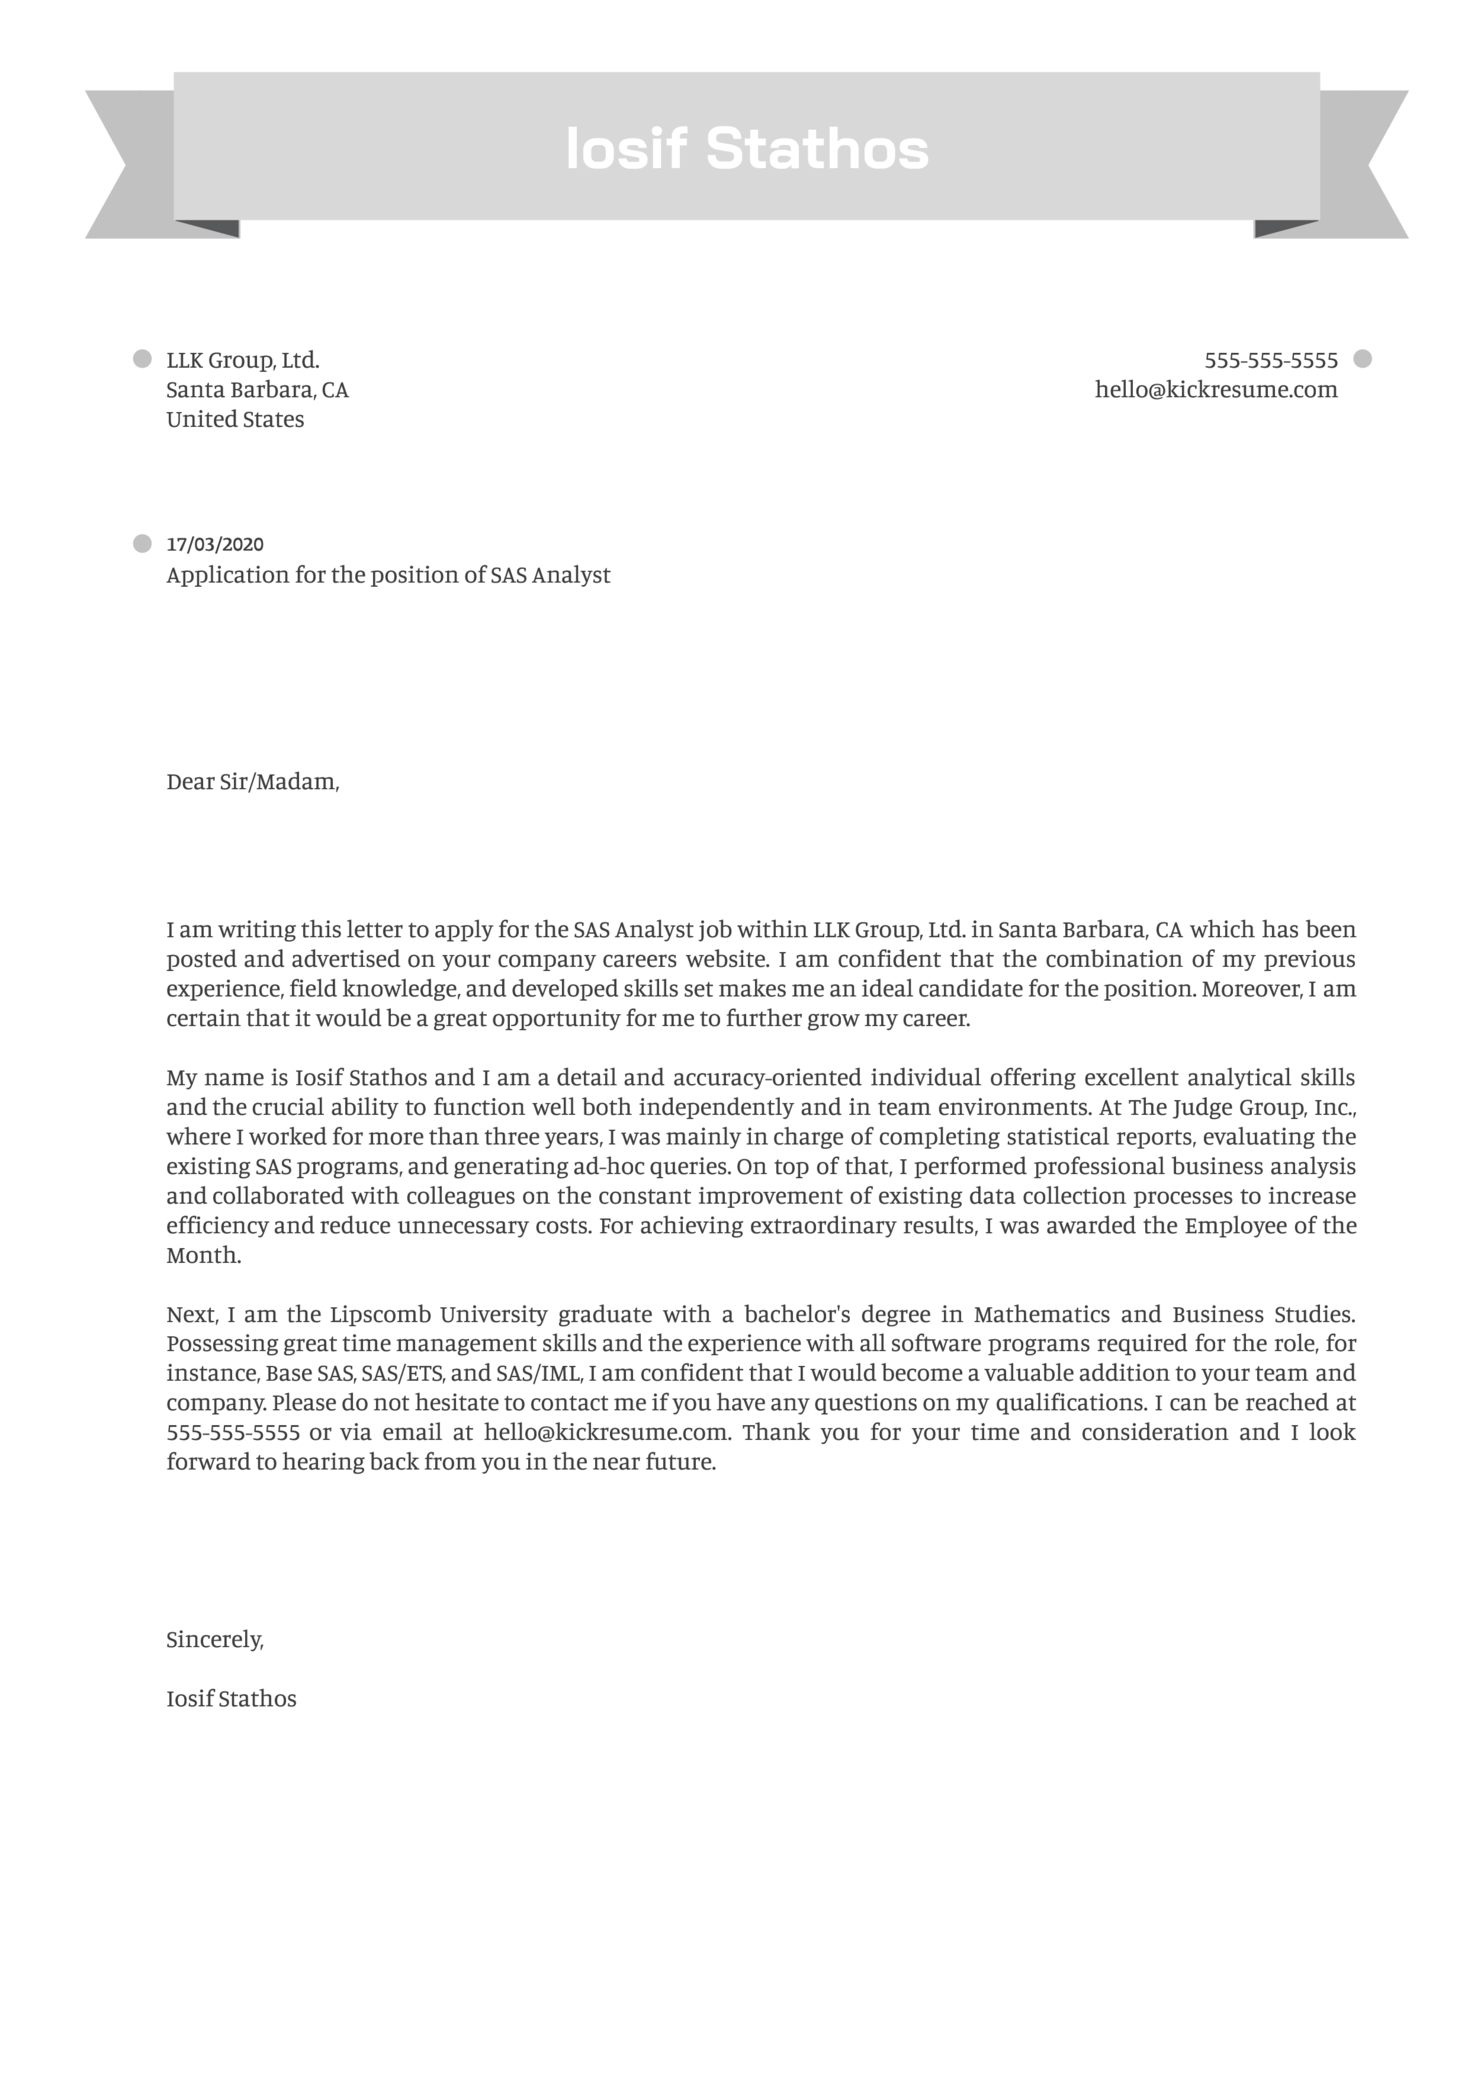 SAS Analyst Cover Letter Example